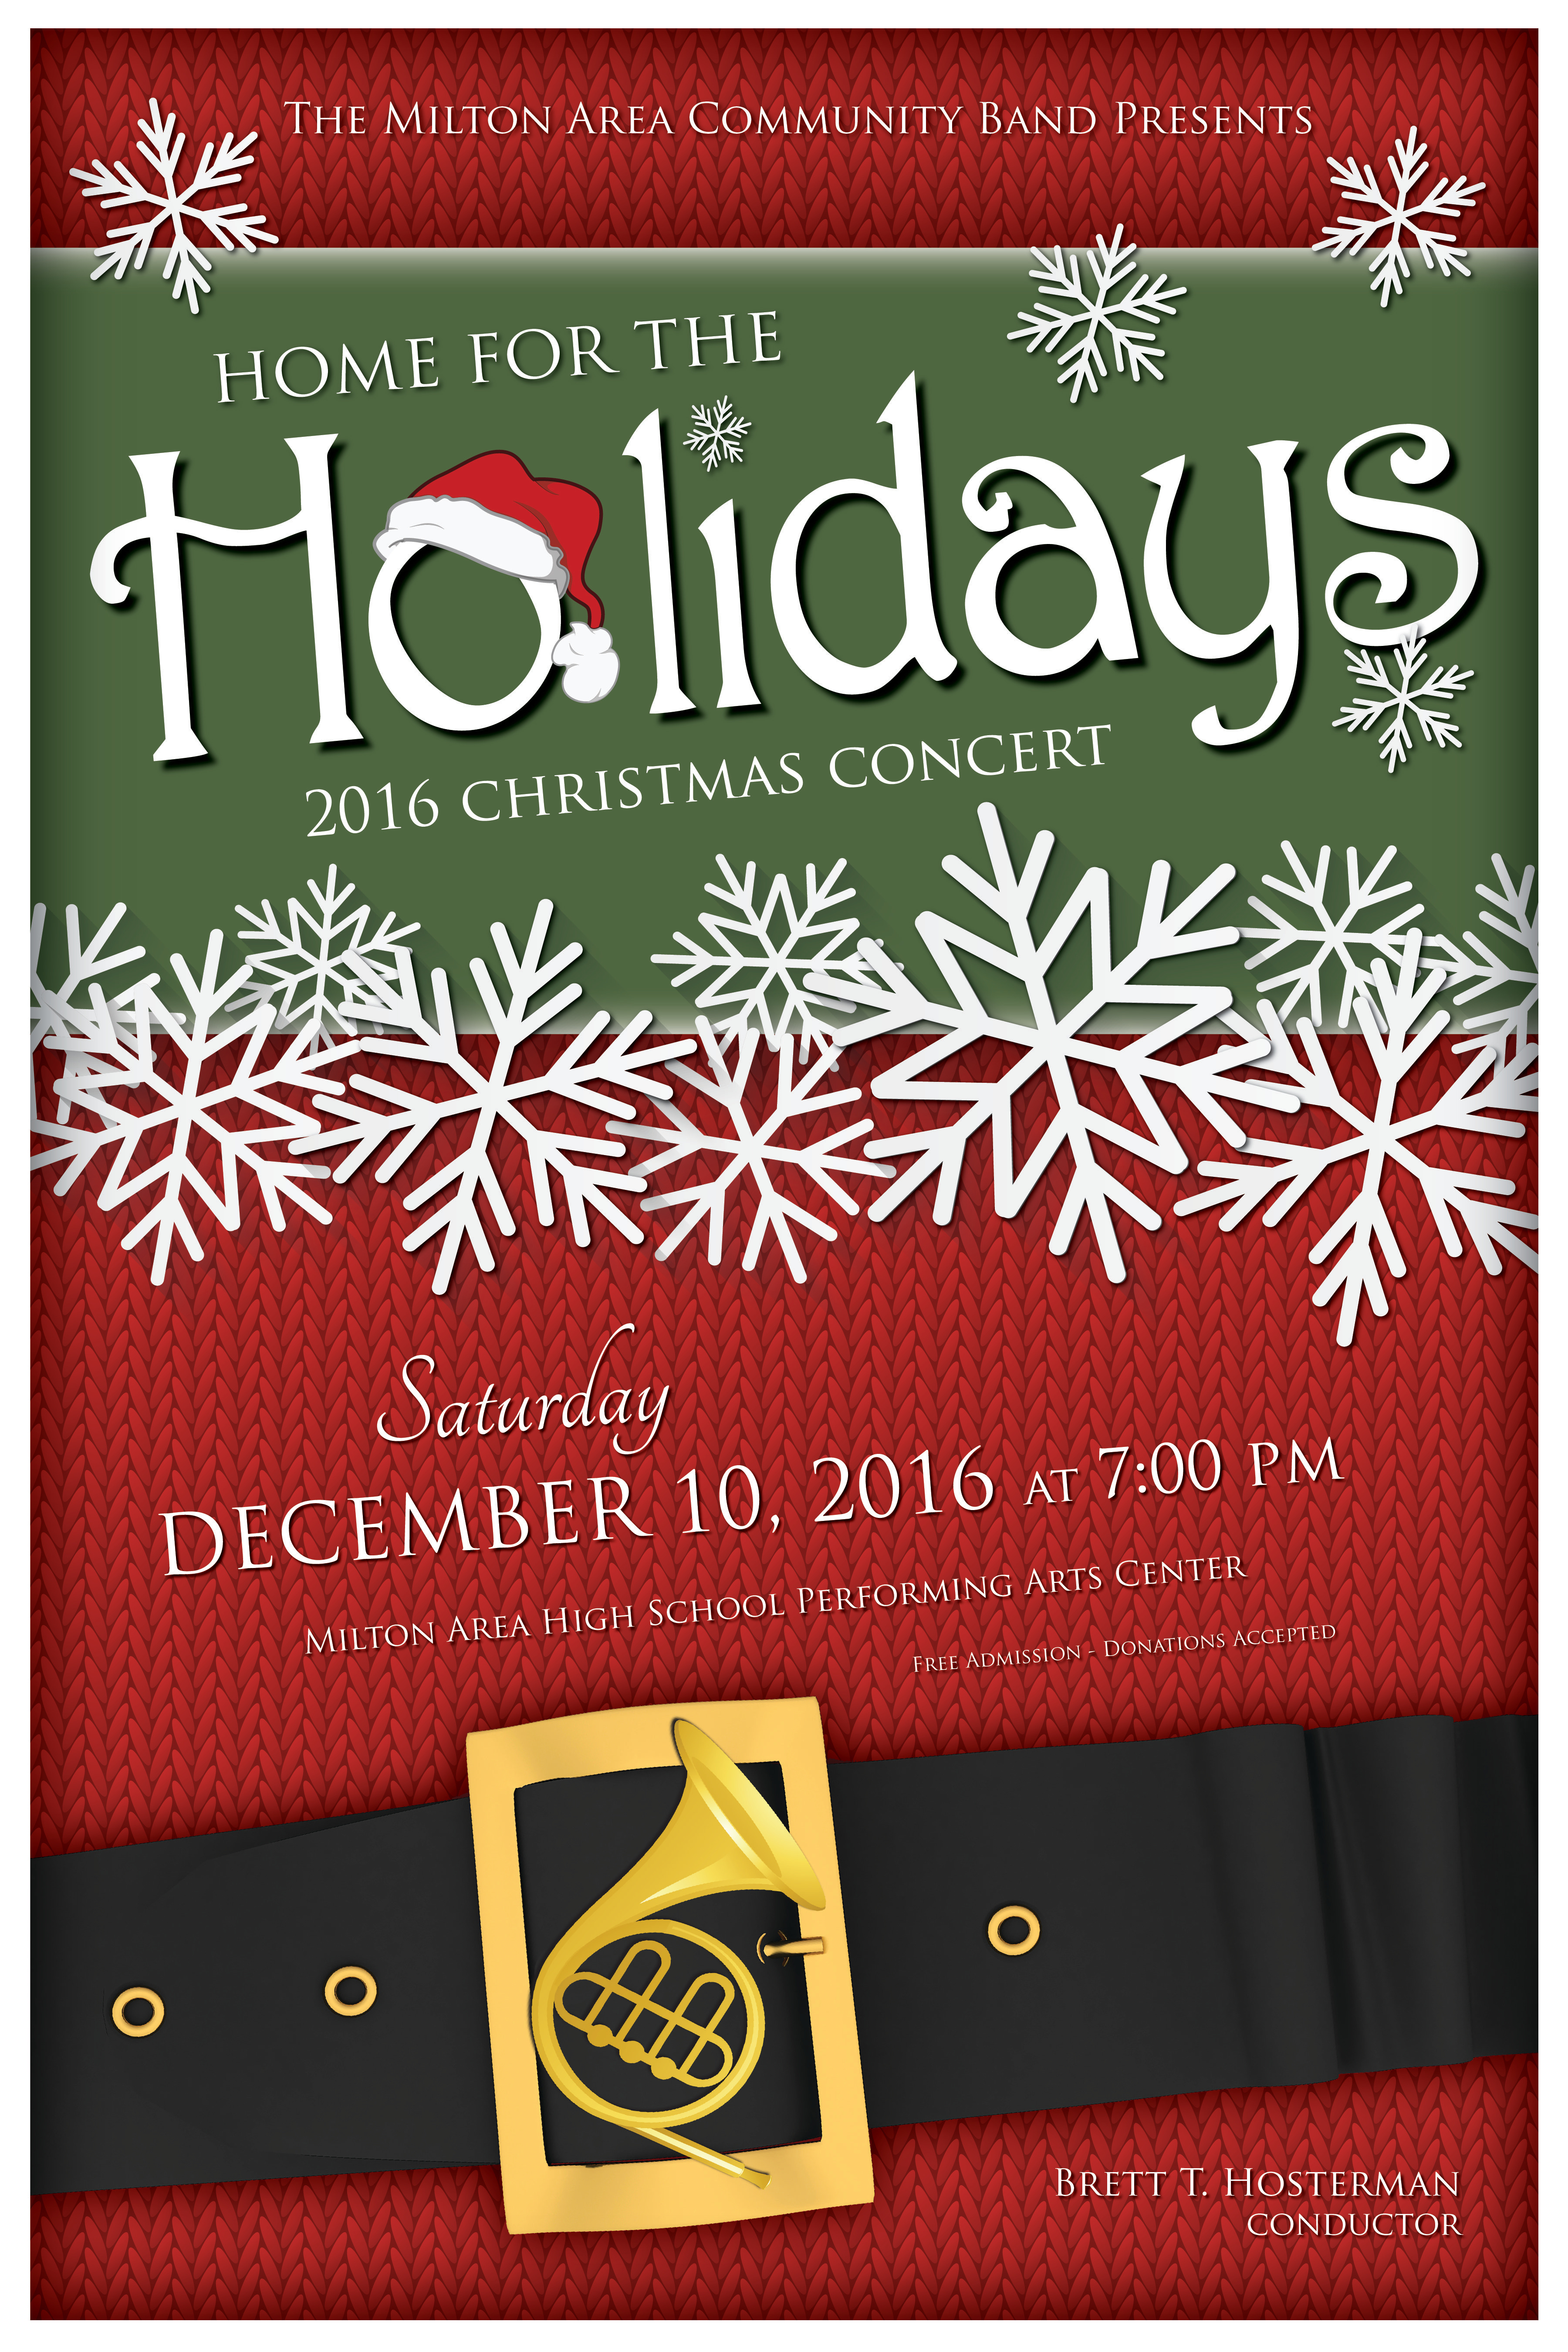 2016 Holiday Concert